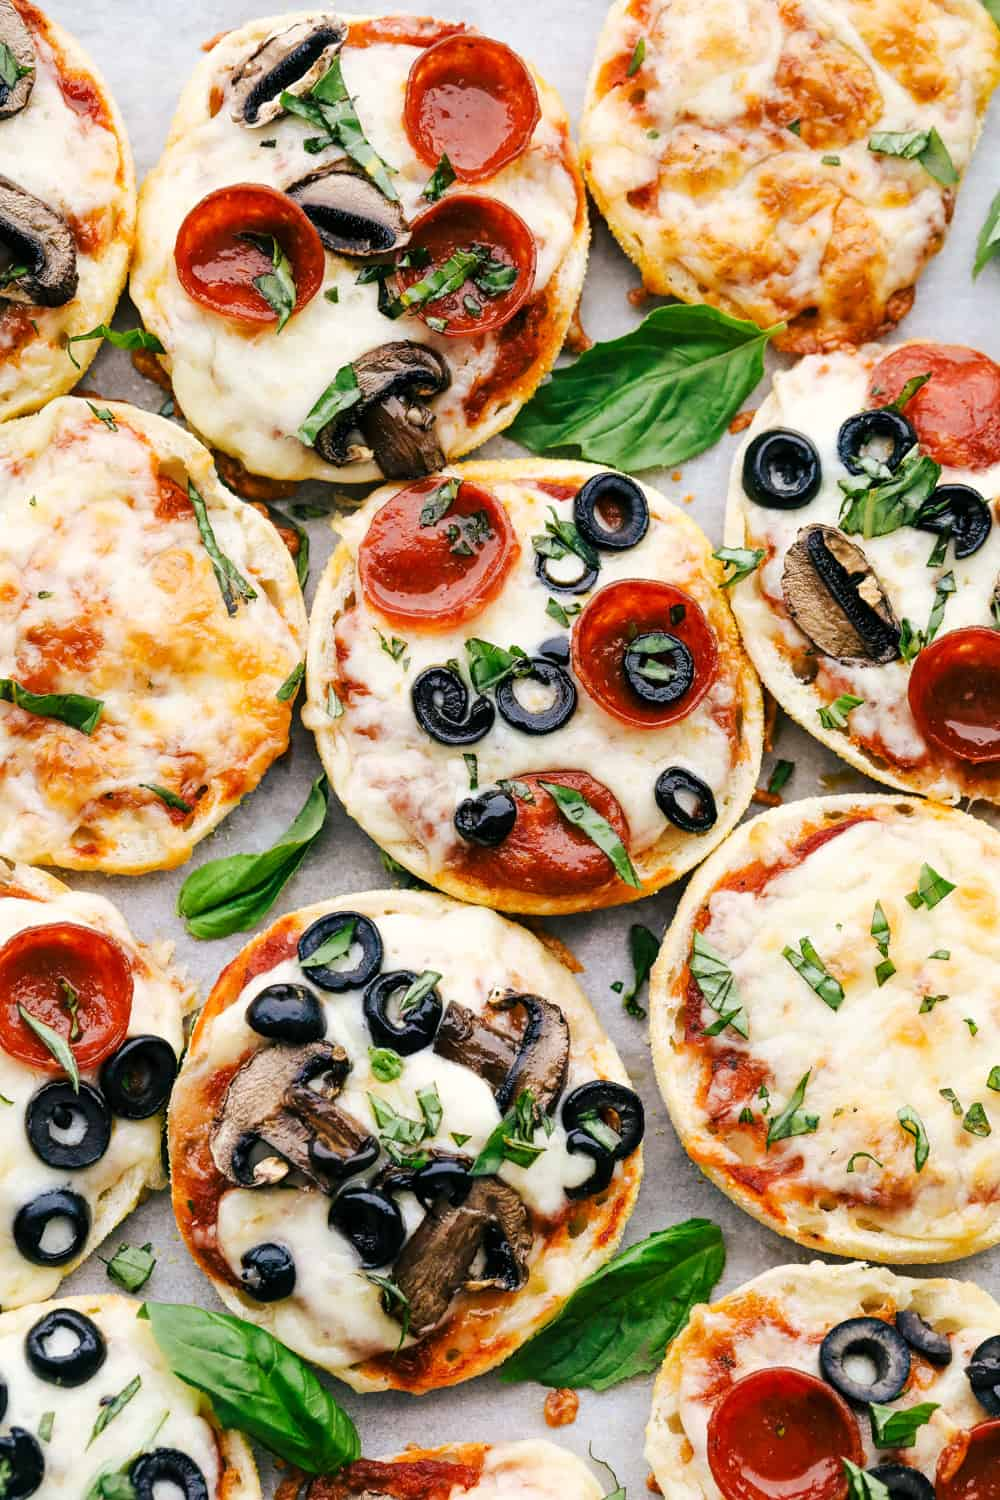 English Muffin Pizzas with various toppings.